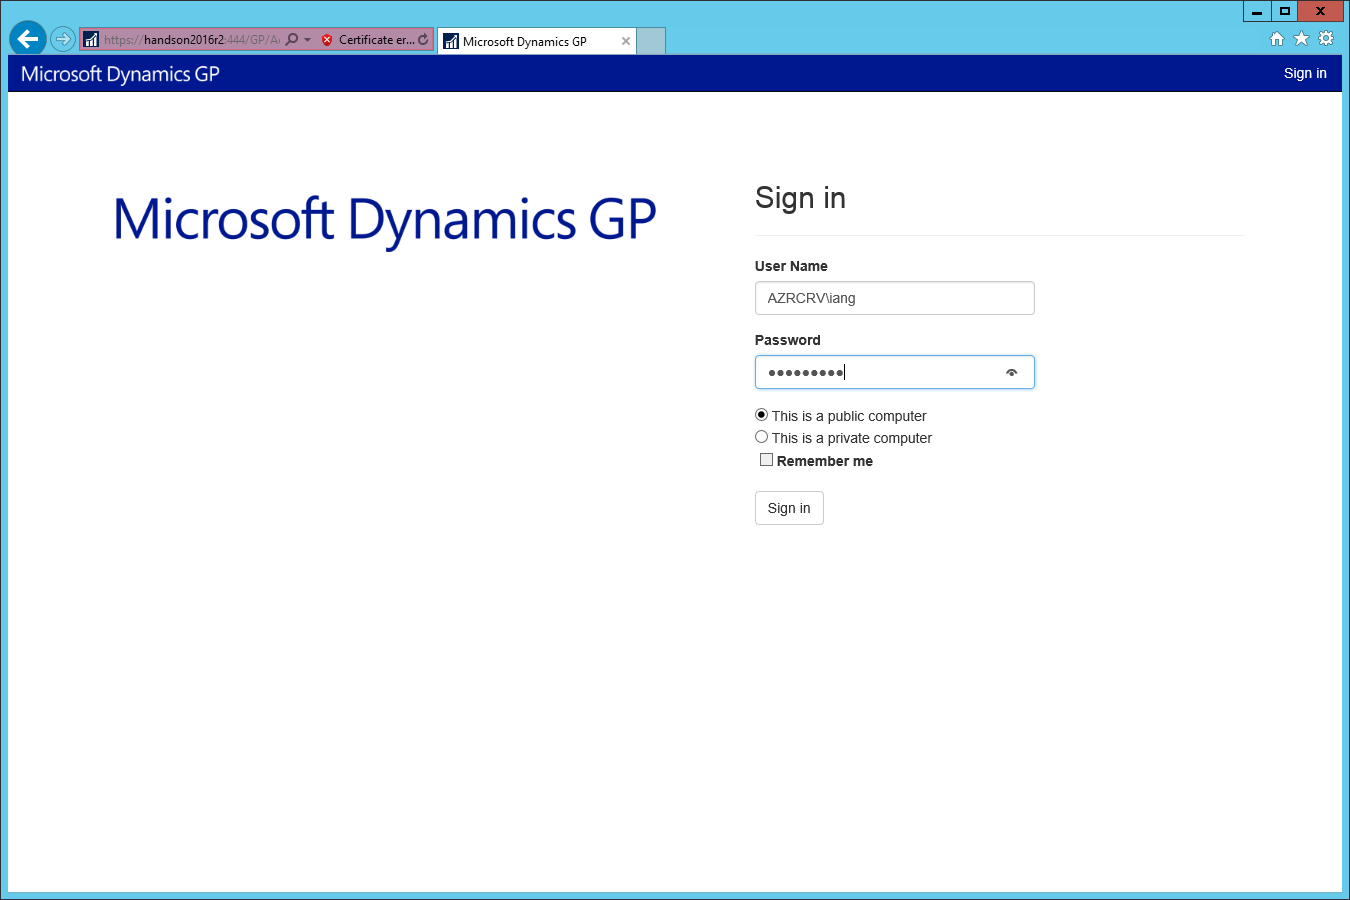 Microsoft Dynamics GP Sign in